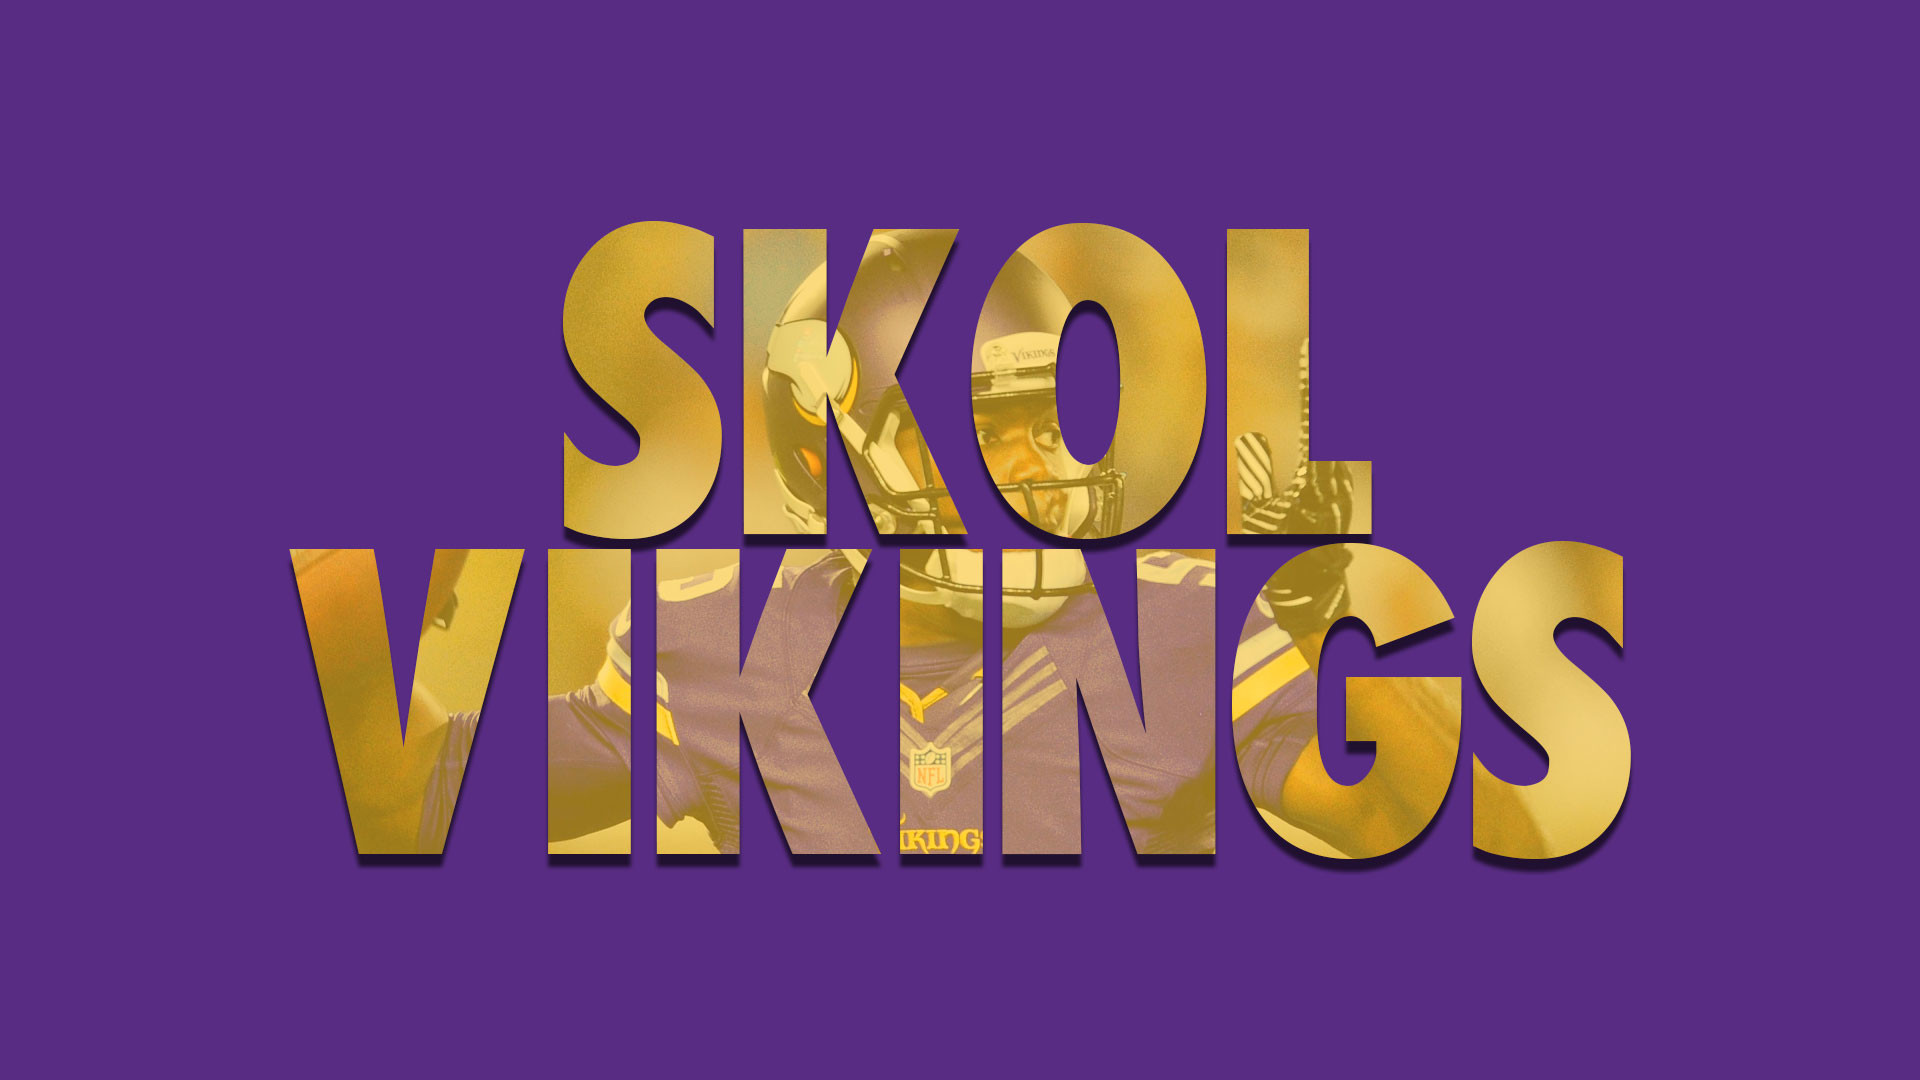 Animated Wallpaper For Mobile Phone Gif Minnesota Vikings Backgrounds 68 Images